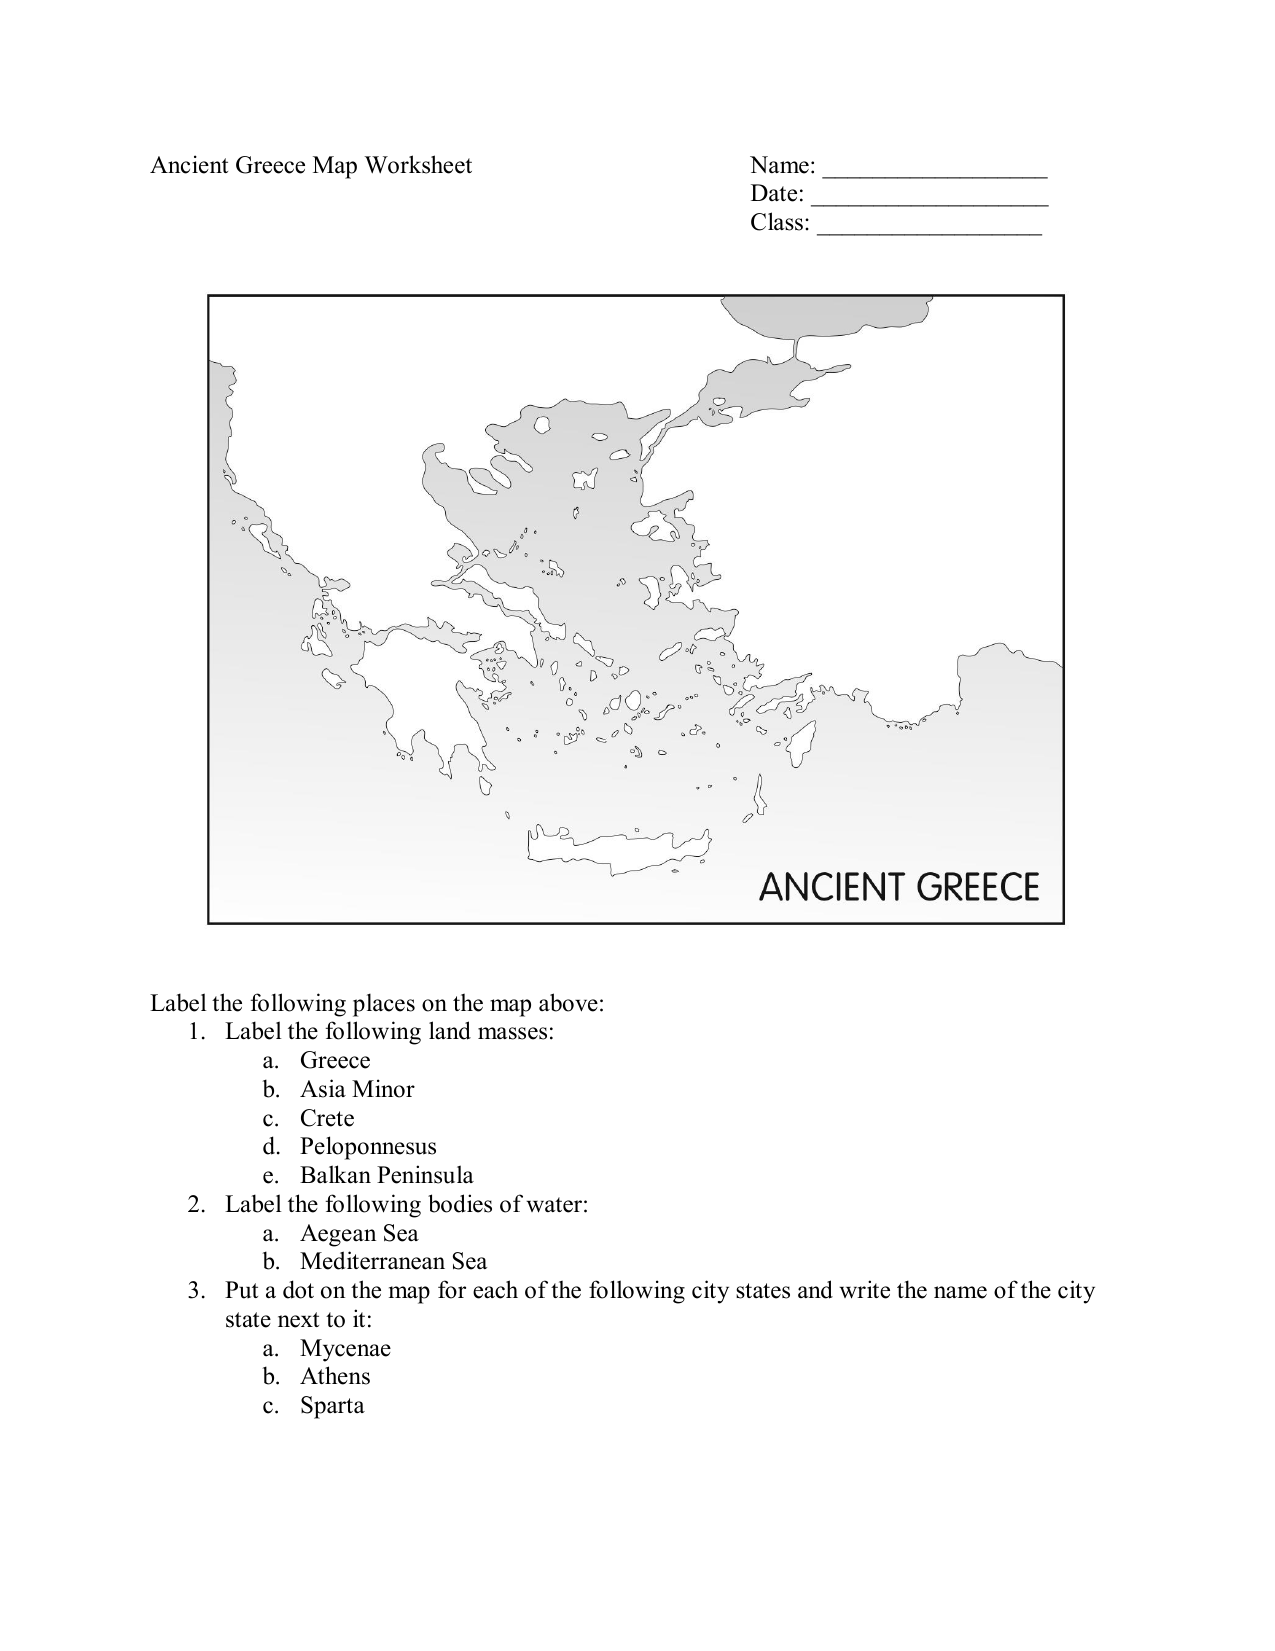 Picture of: Ancient Greece Map Worksheet